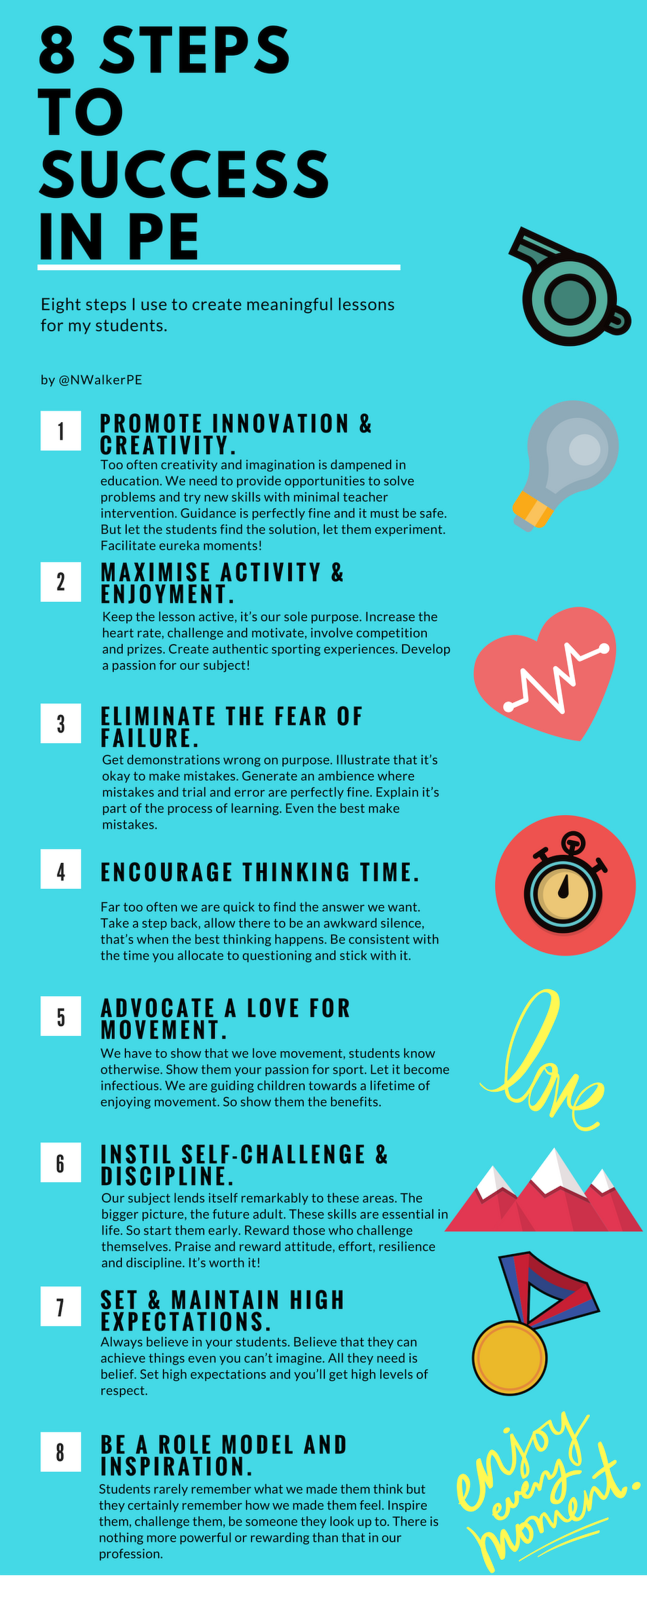 8 Steps to Success in PE